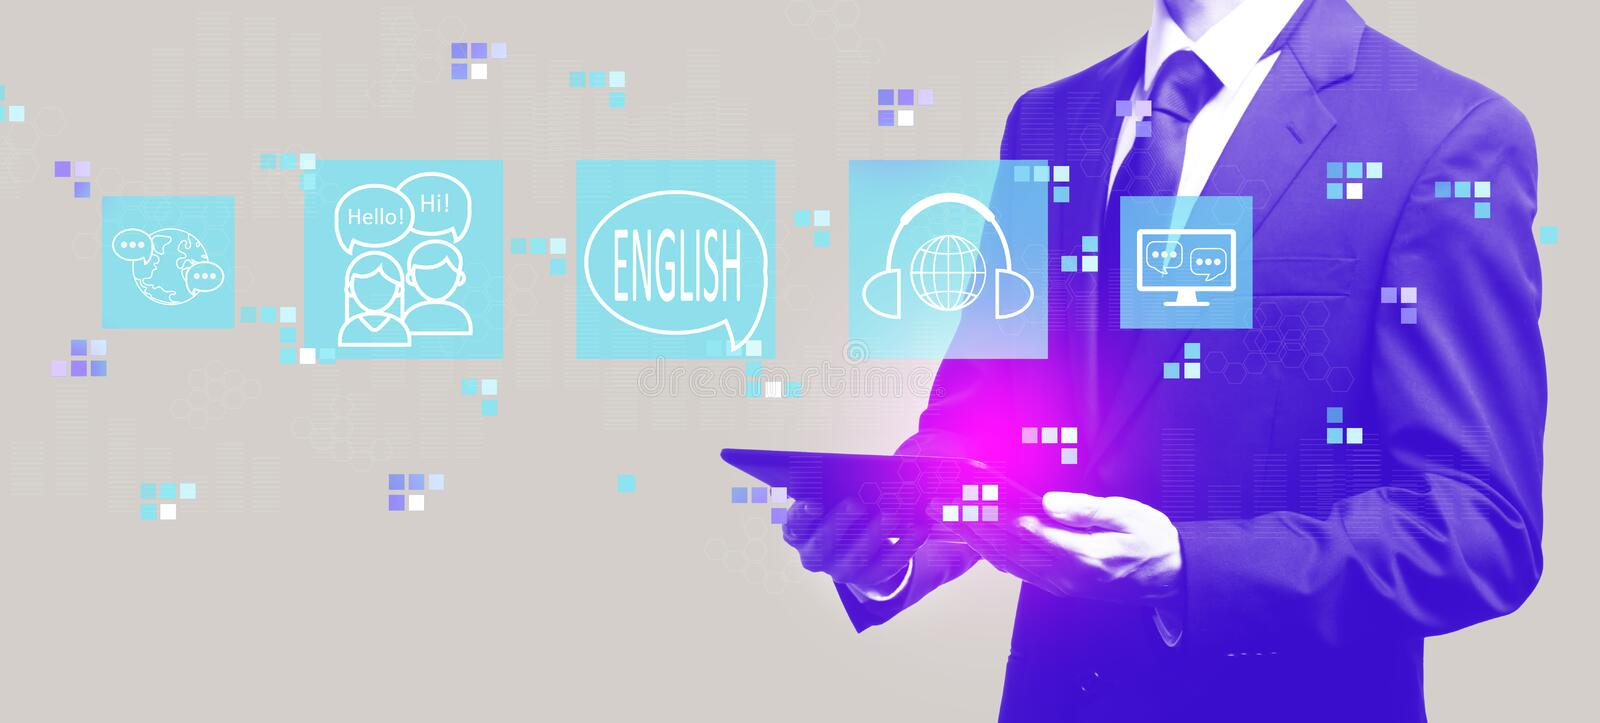 English with businessman holding a tablet. Computer stock illustration